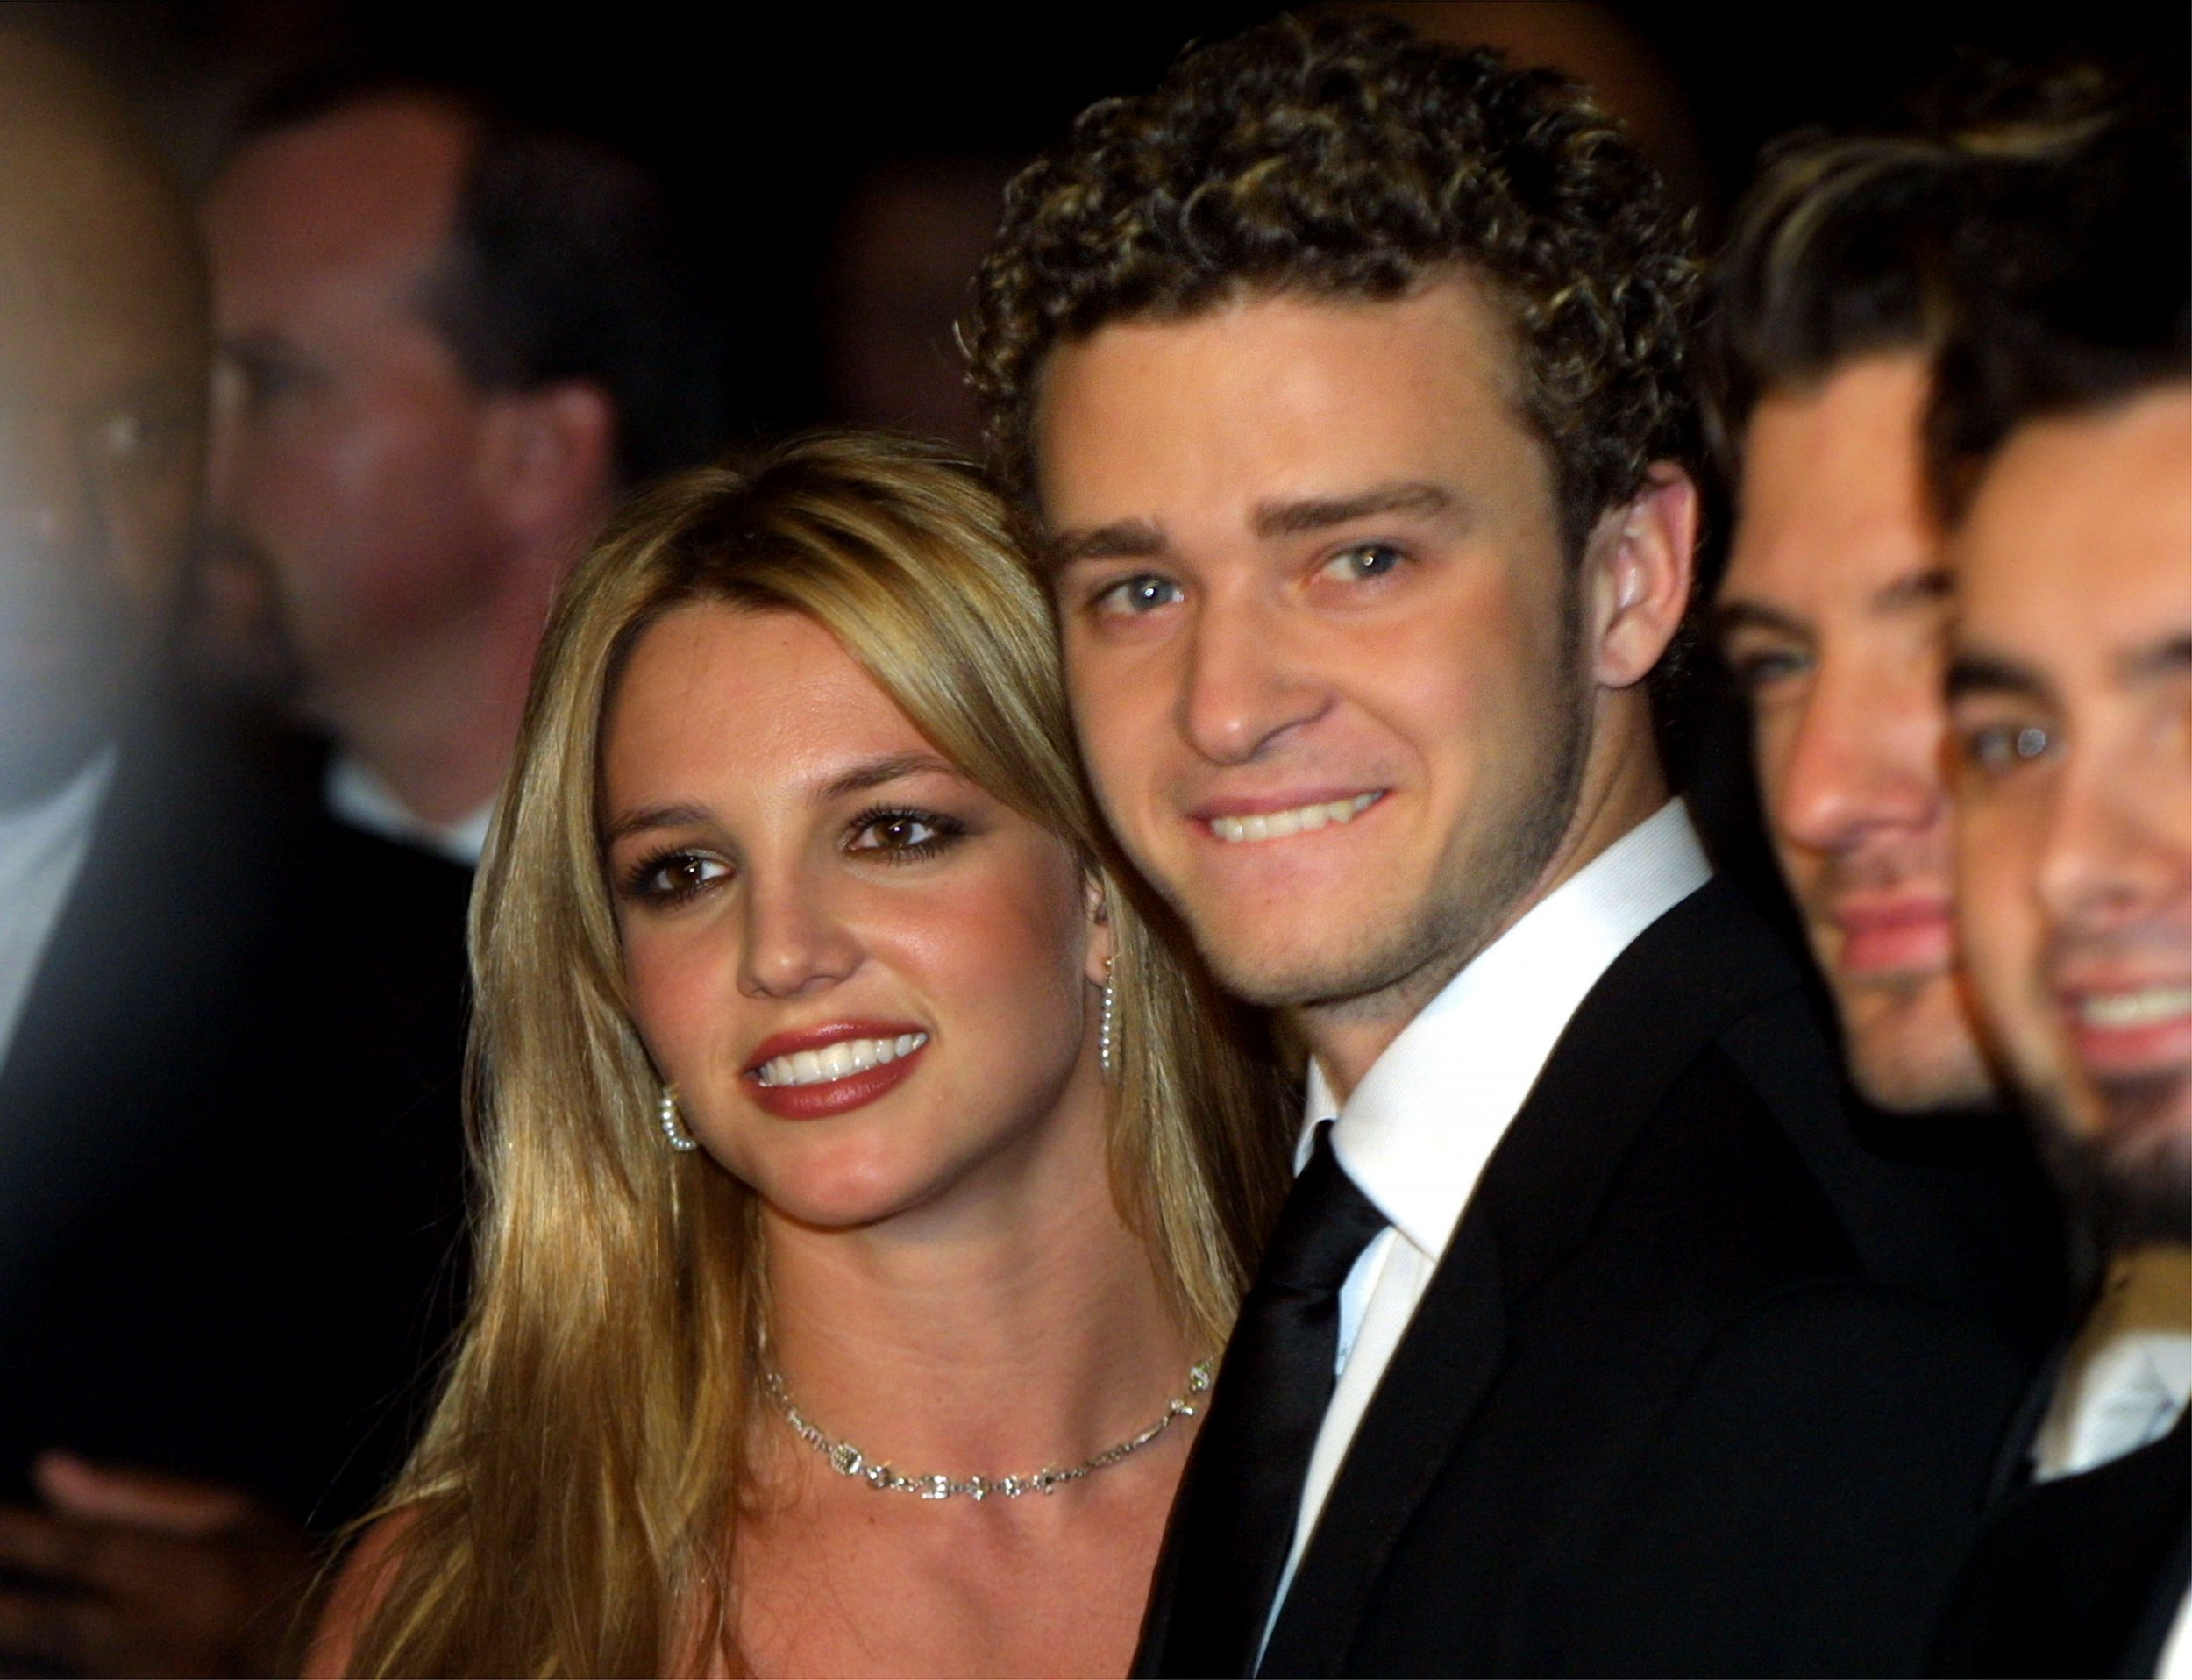 Michael Jackson Accuser Wade Robson Broke Up Britney Spears And Justin Timberlake In Cheating Scandal Jackson S Niece Claims